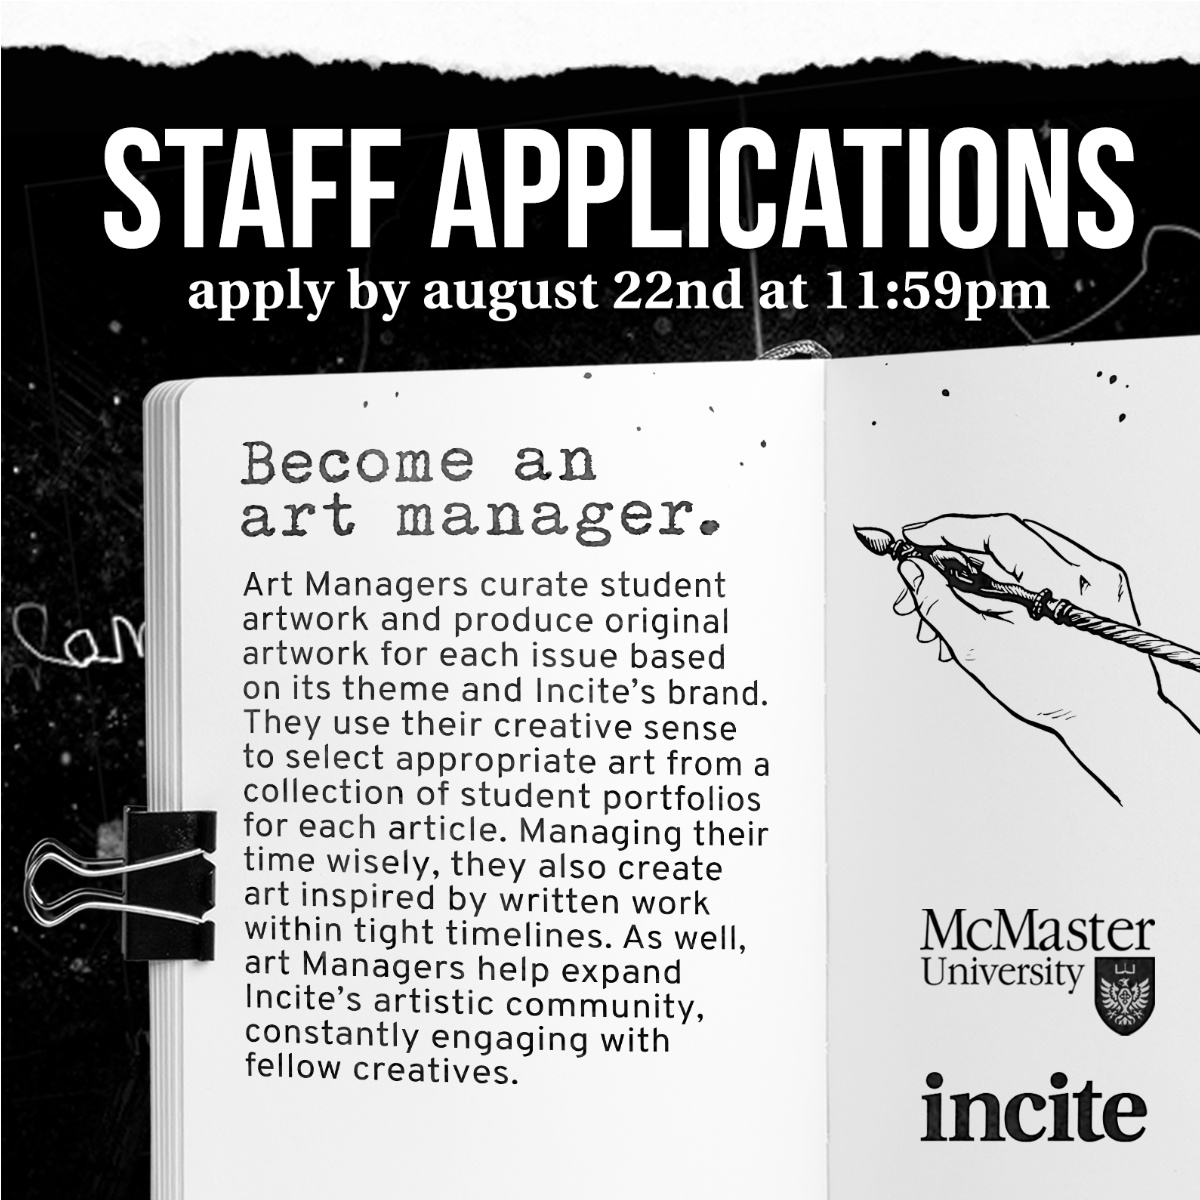 Art Managers curate student artwork and produce original artwork for each issue based on its theme and Incite's brand. They use their creative sense to select appropriate art from a collection of student portfolios for each article. Managing their time wisely, they also create art inspired by written work within tight timelines. Art Managers help expand Incite's artistic community, constantly engaging with fellow creatives.